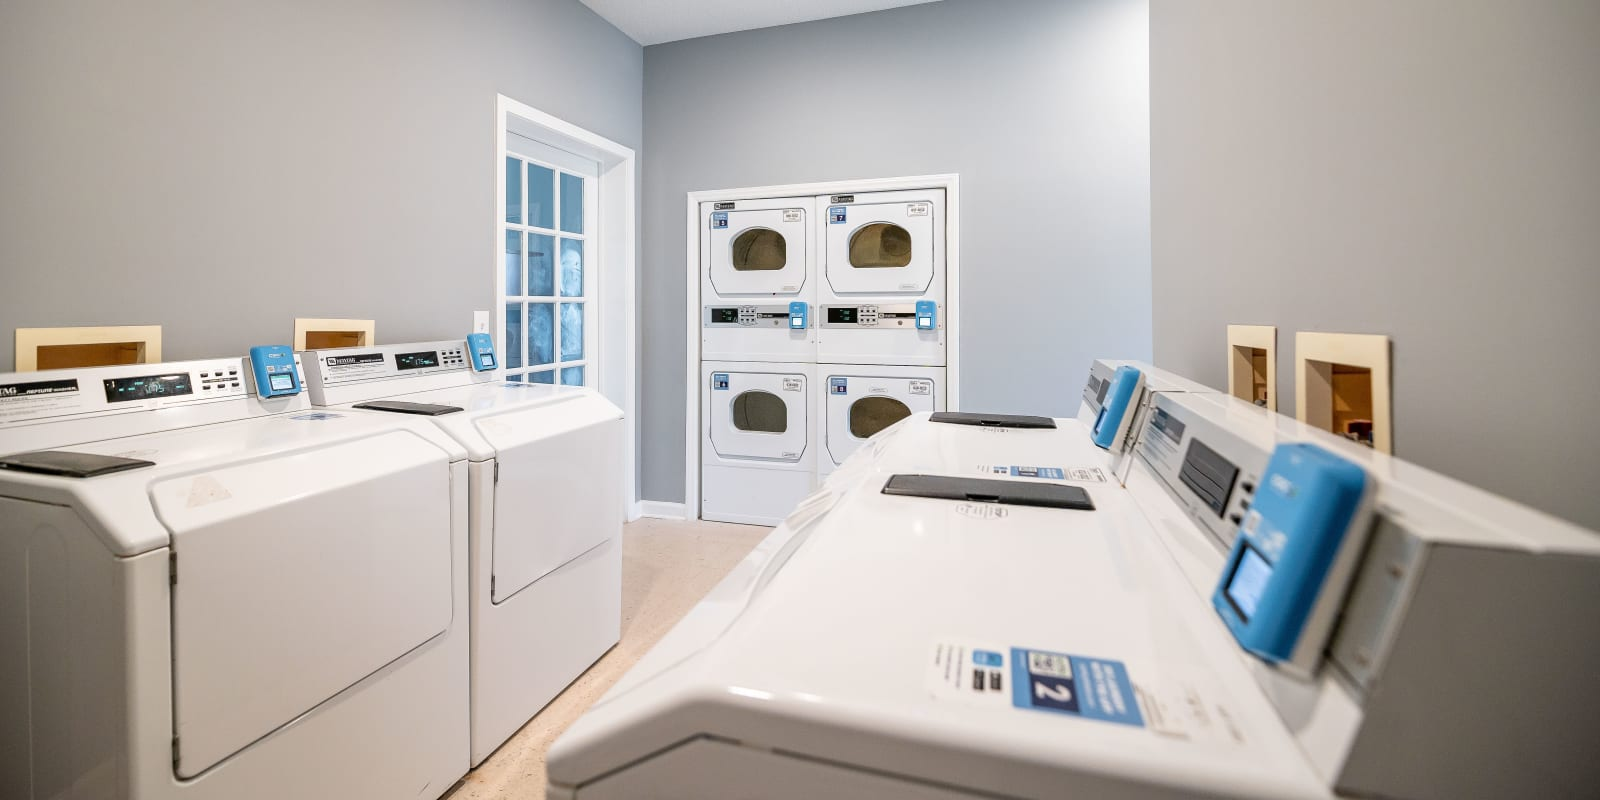 Laundry Facility at Clemmons Station Apartment Homes in Clemmons, North Carolina